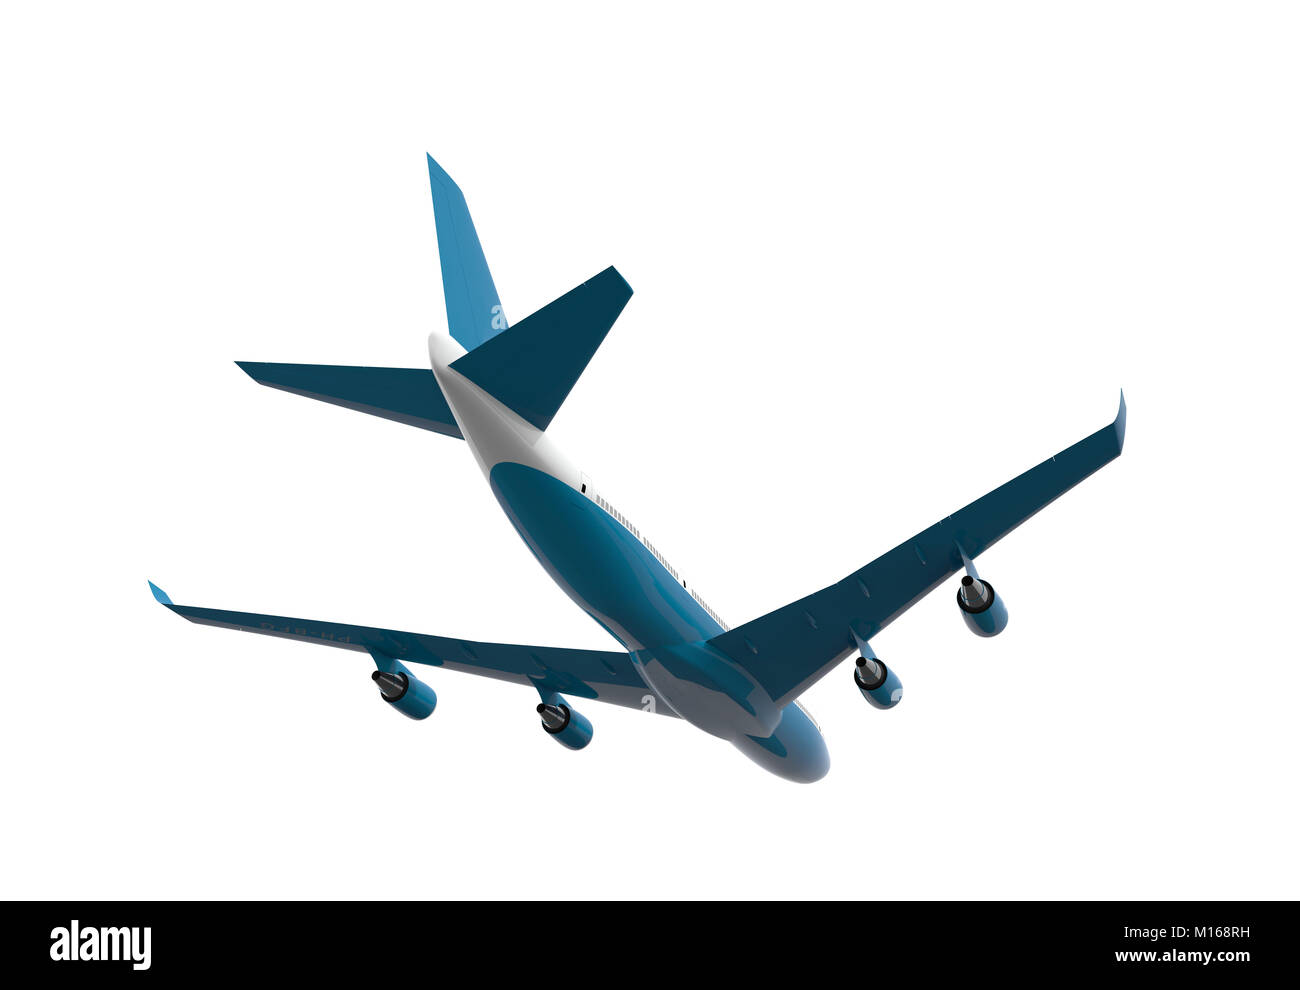 Back of a blue and white airplane isolated on a white background: 3D illustration - Stock Image